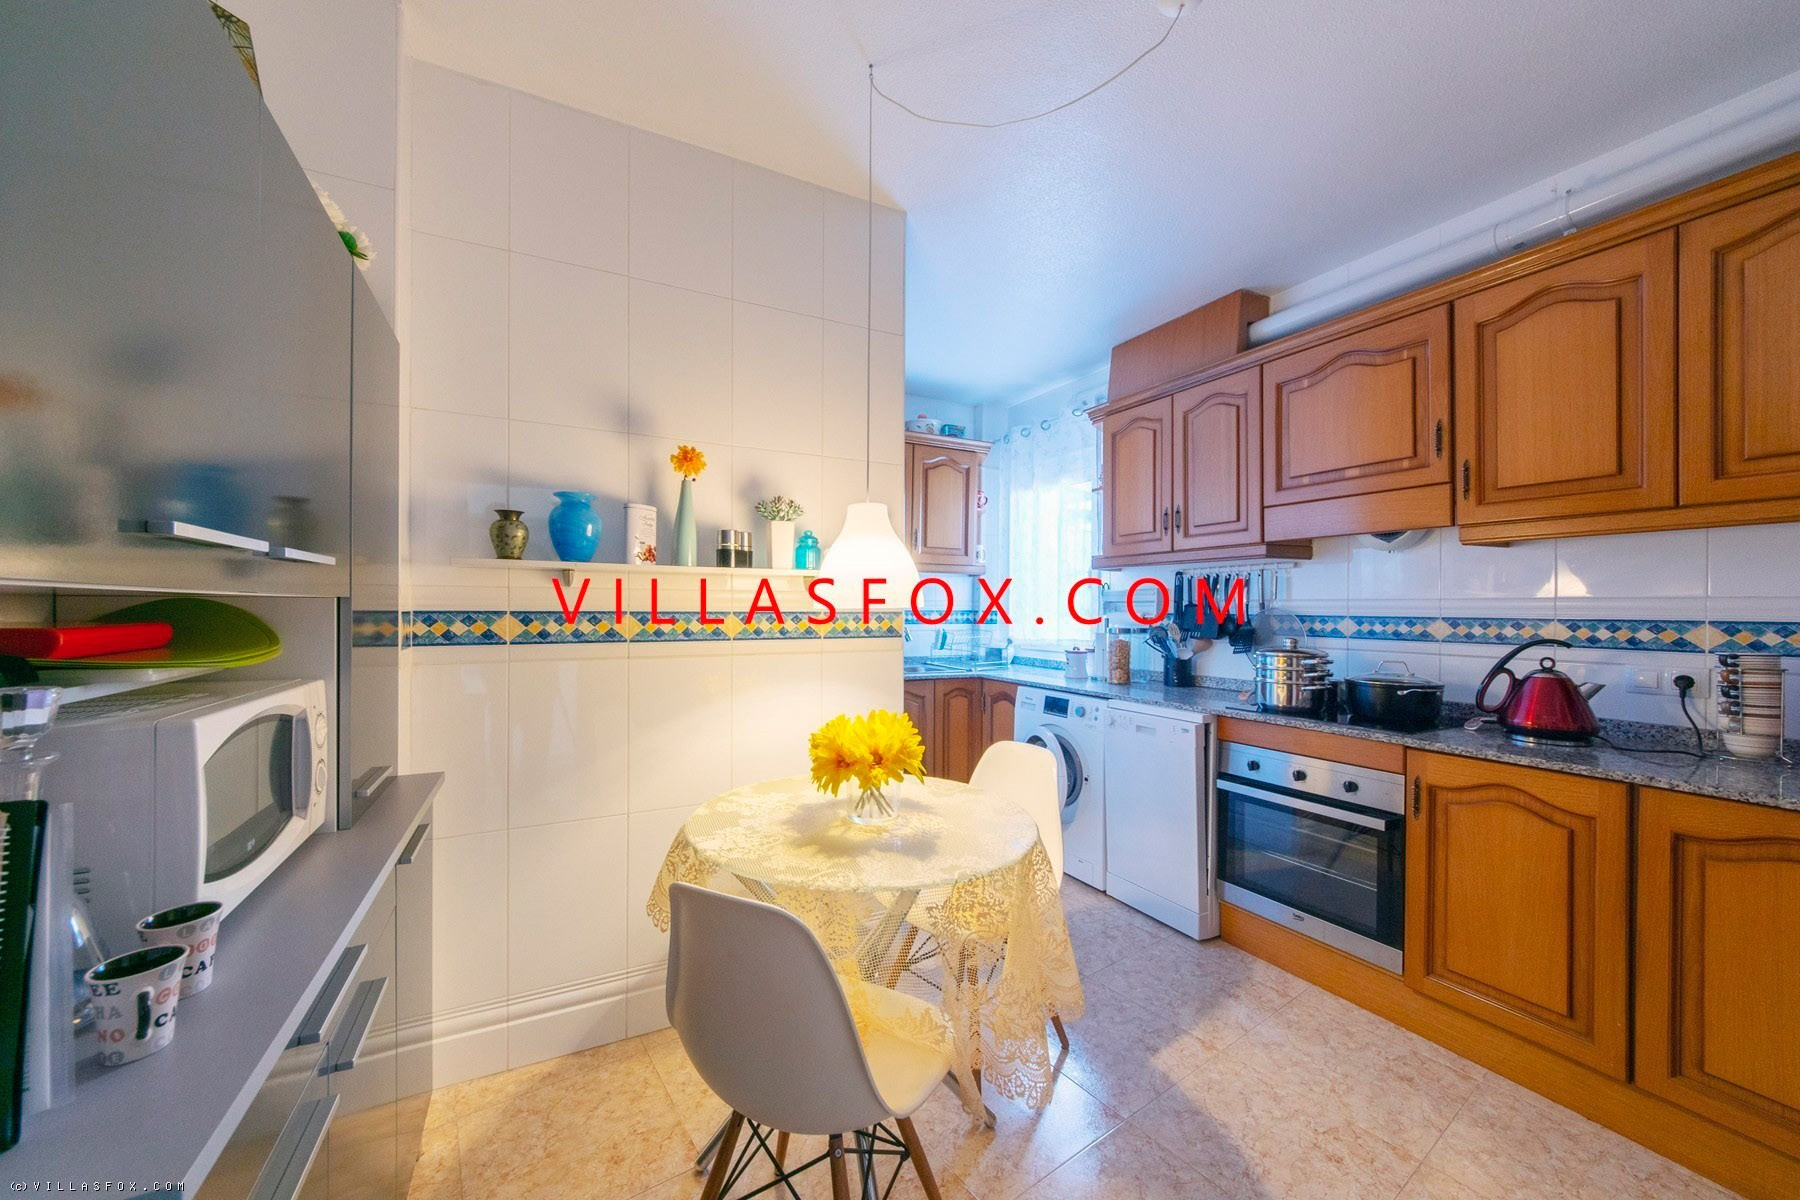 2-bedroom apartment with conservatory, communal pool and solarium